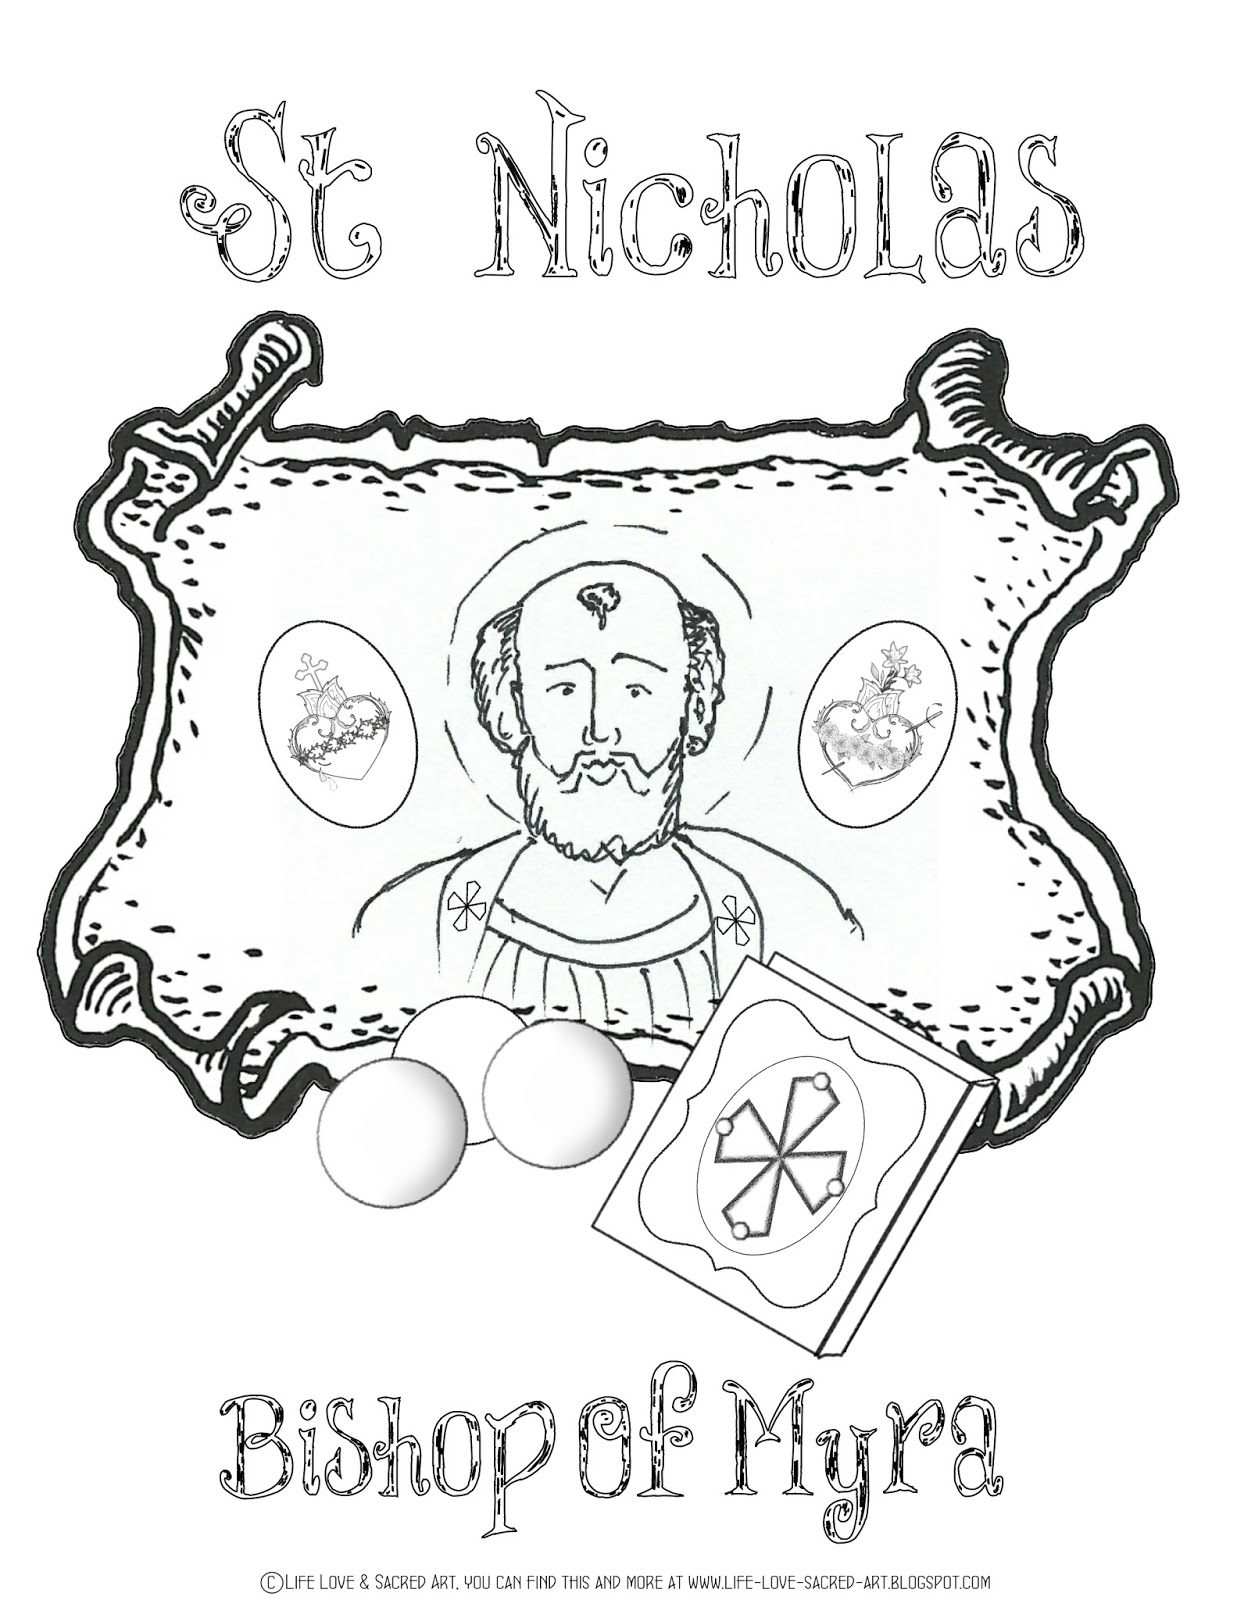 Help Bring You Great Giveaways And FREE Coloring Pages Holy Cards Little Prayer Bags Make Perfect St Nicholas Day Giftsencouraging